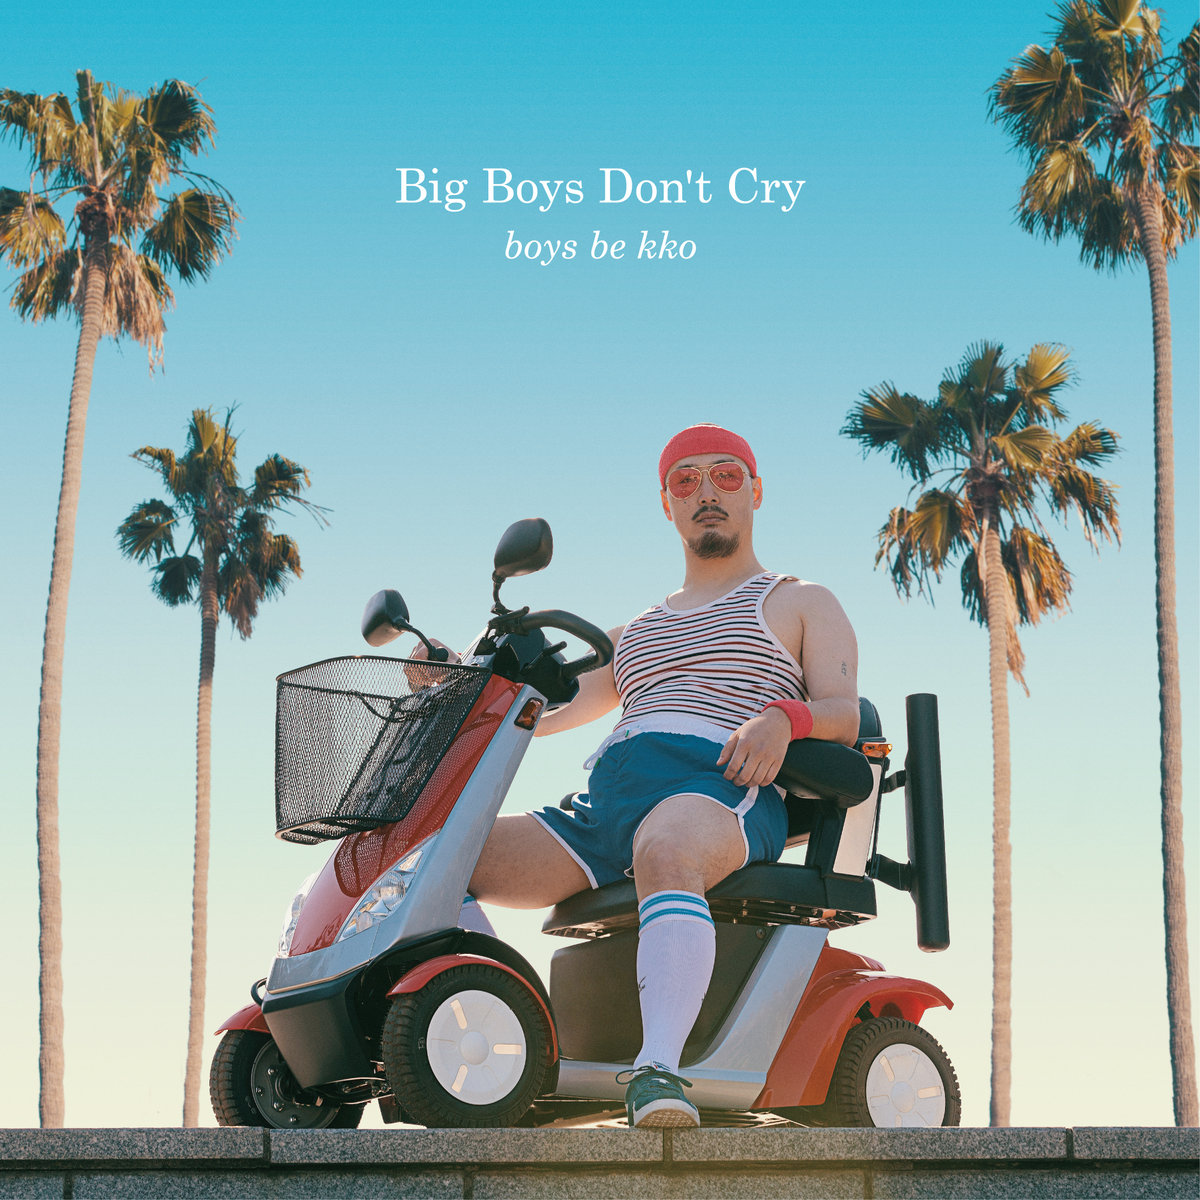 Big Boys Don't Cry - boys be kko